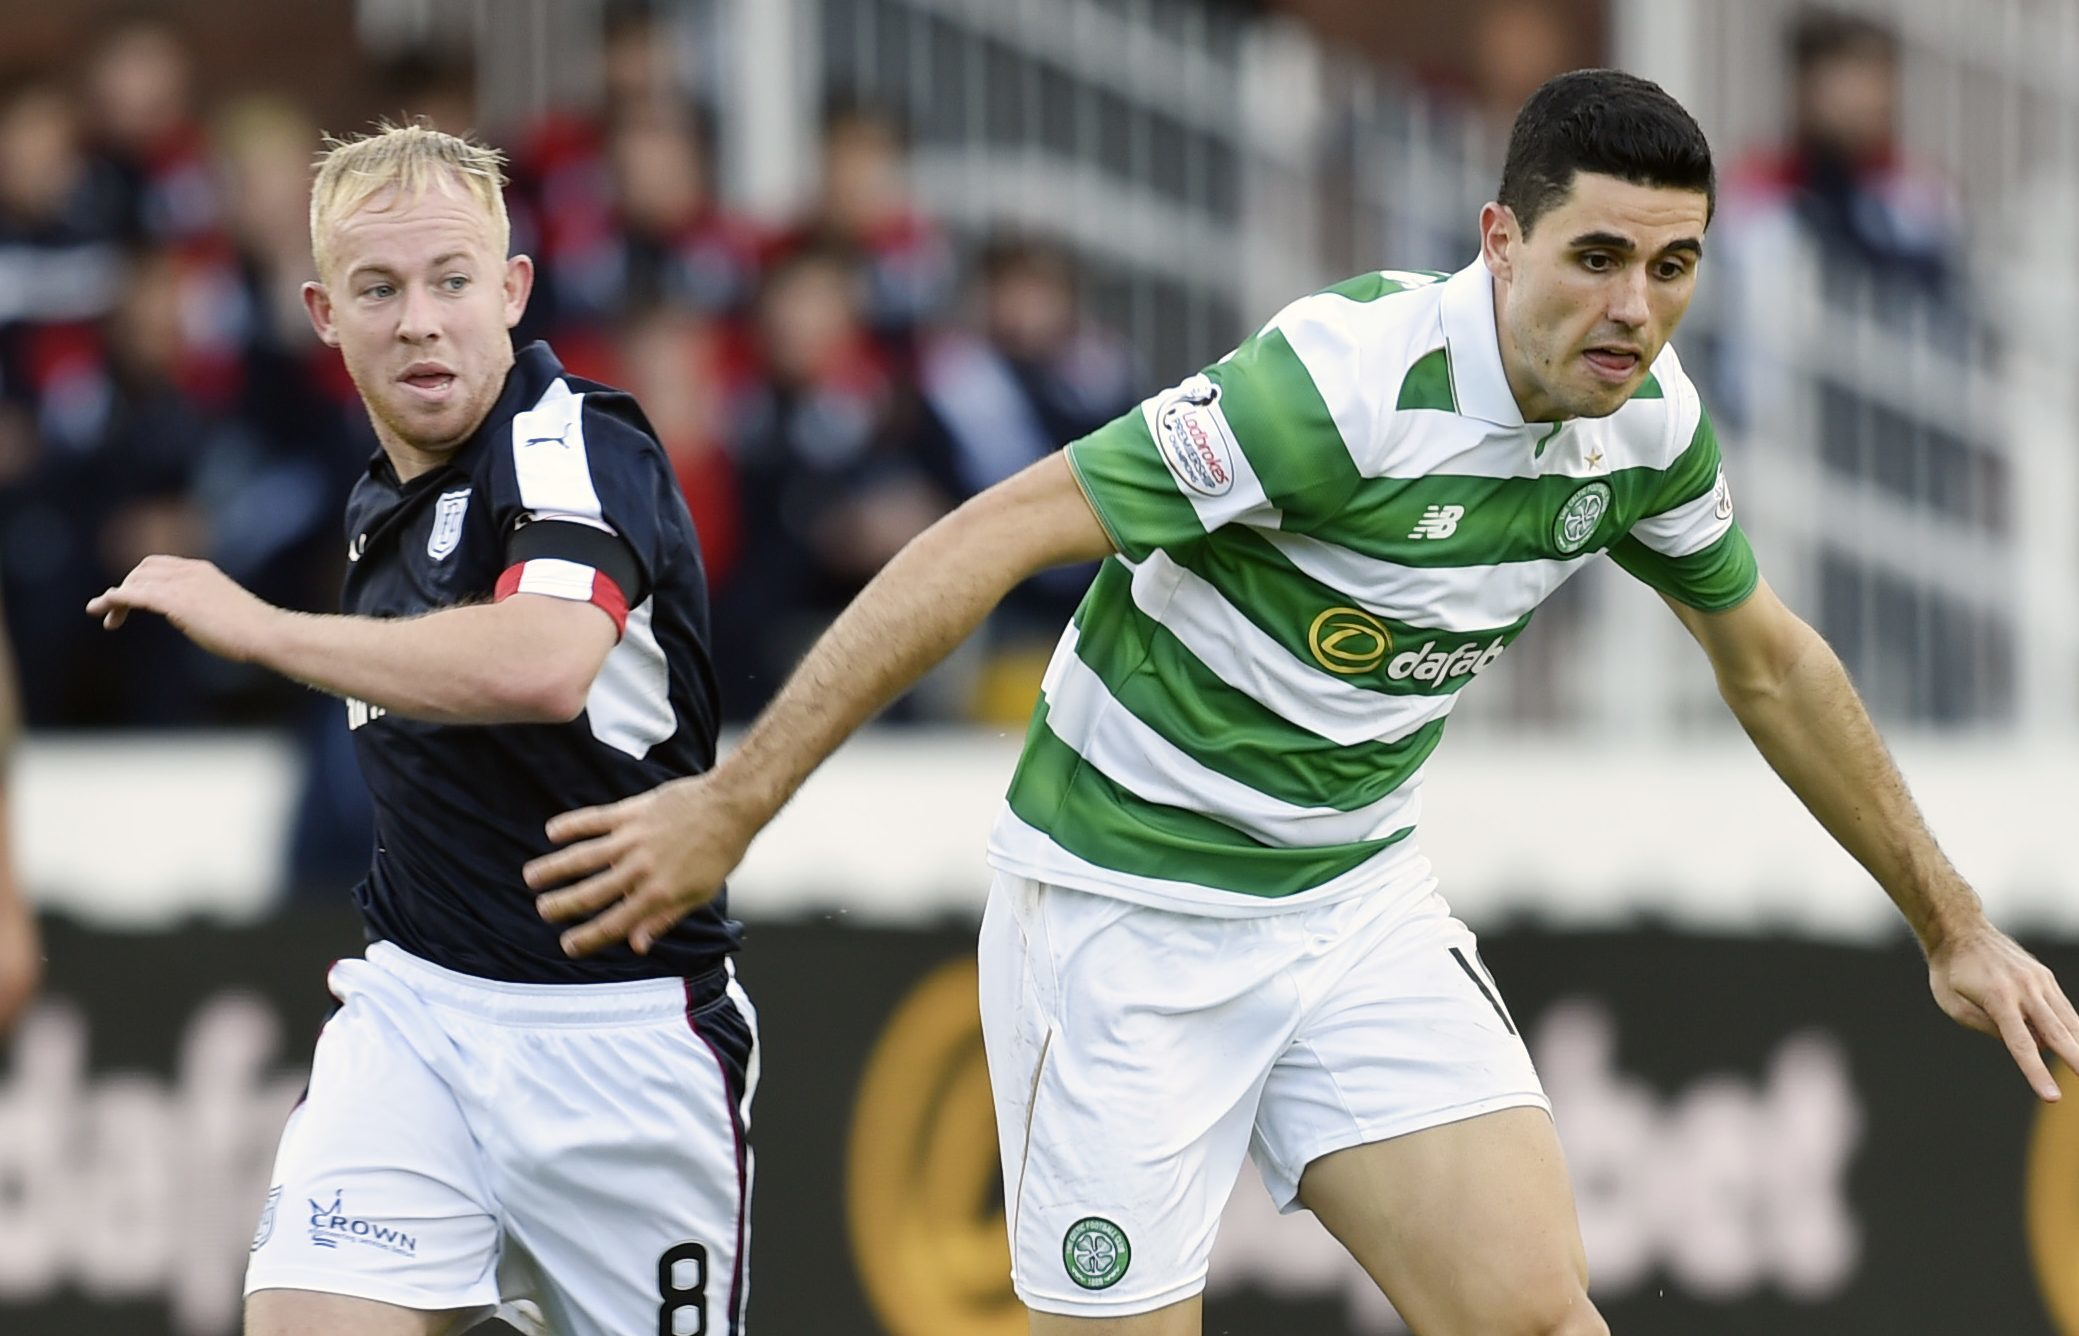 Nicky Low in action against Celtic.